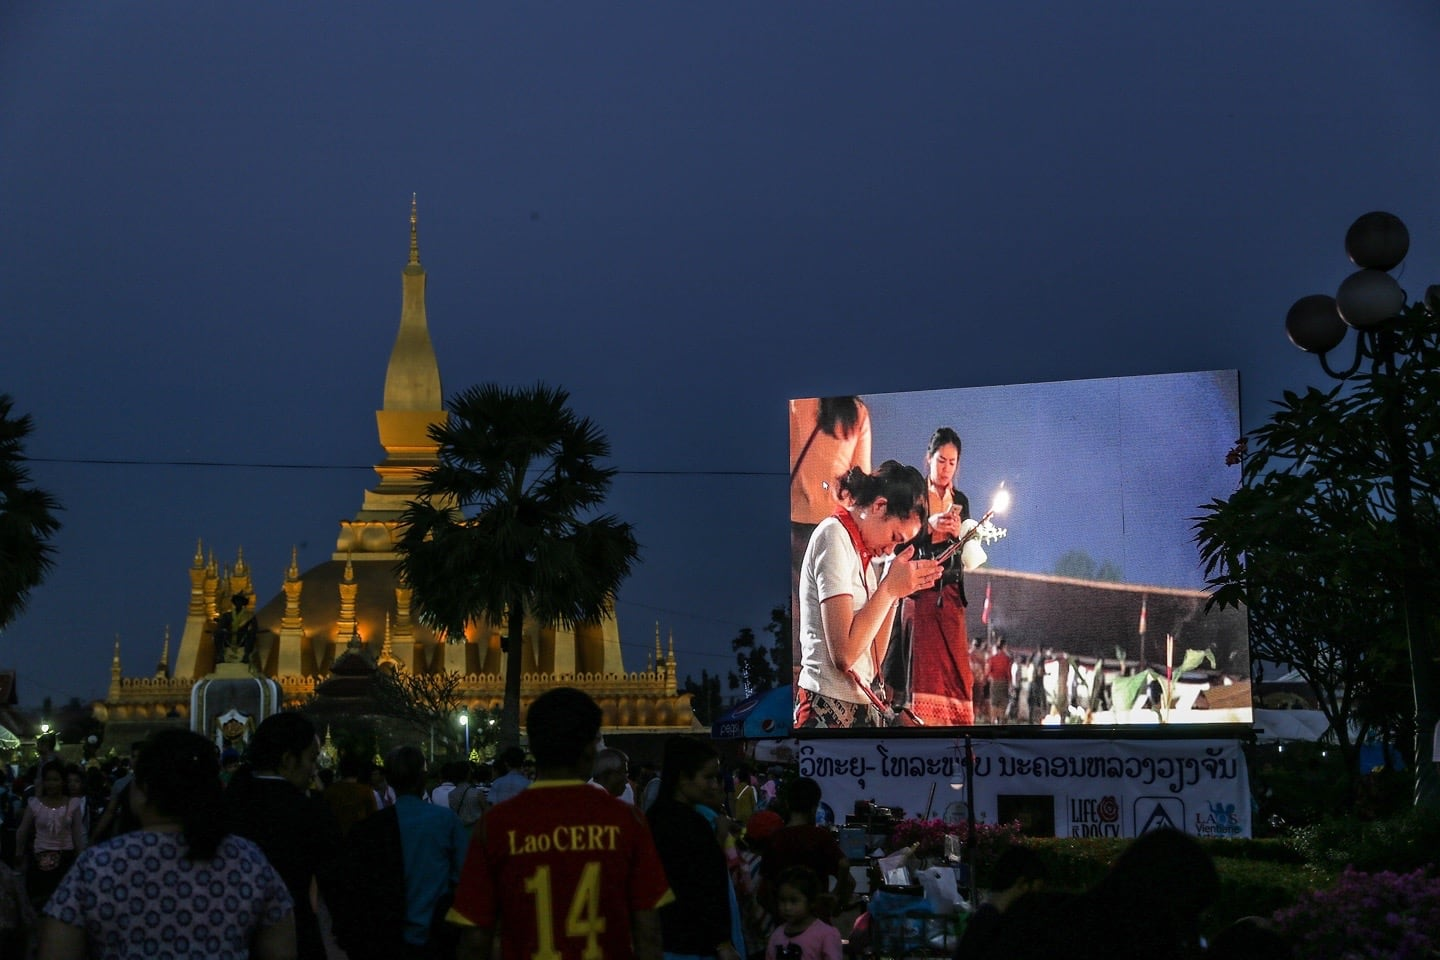 jumbotron broadcasts festival in Laos